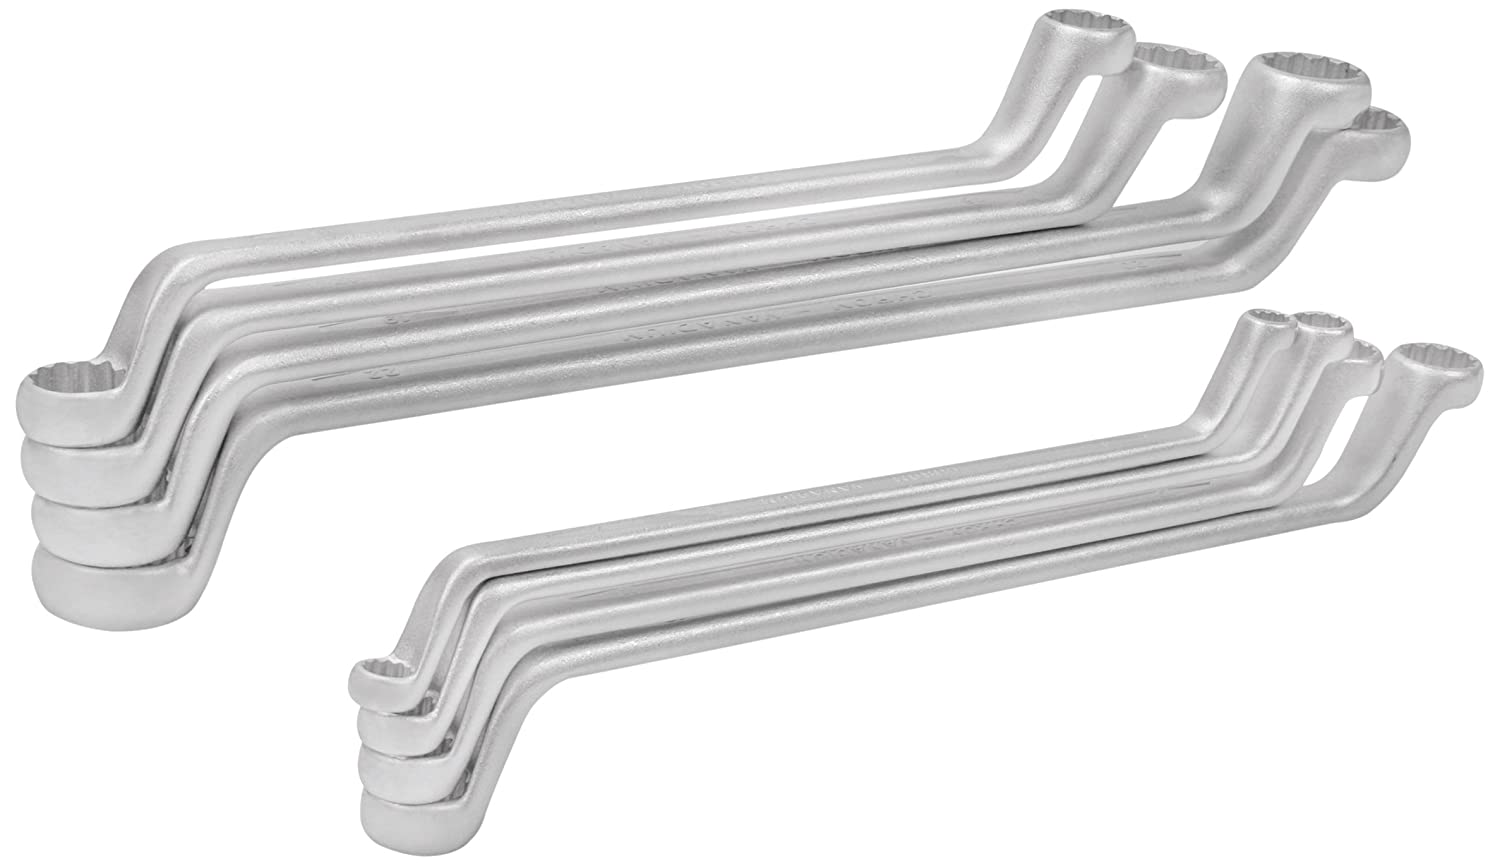 1//4-1.1//4 AF Matador 0200 9081 Double-Ended Ring Spanner Set of 8